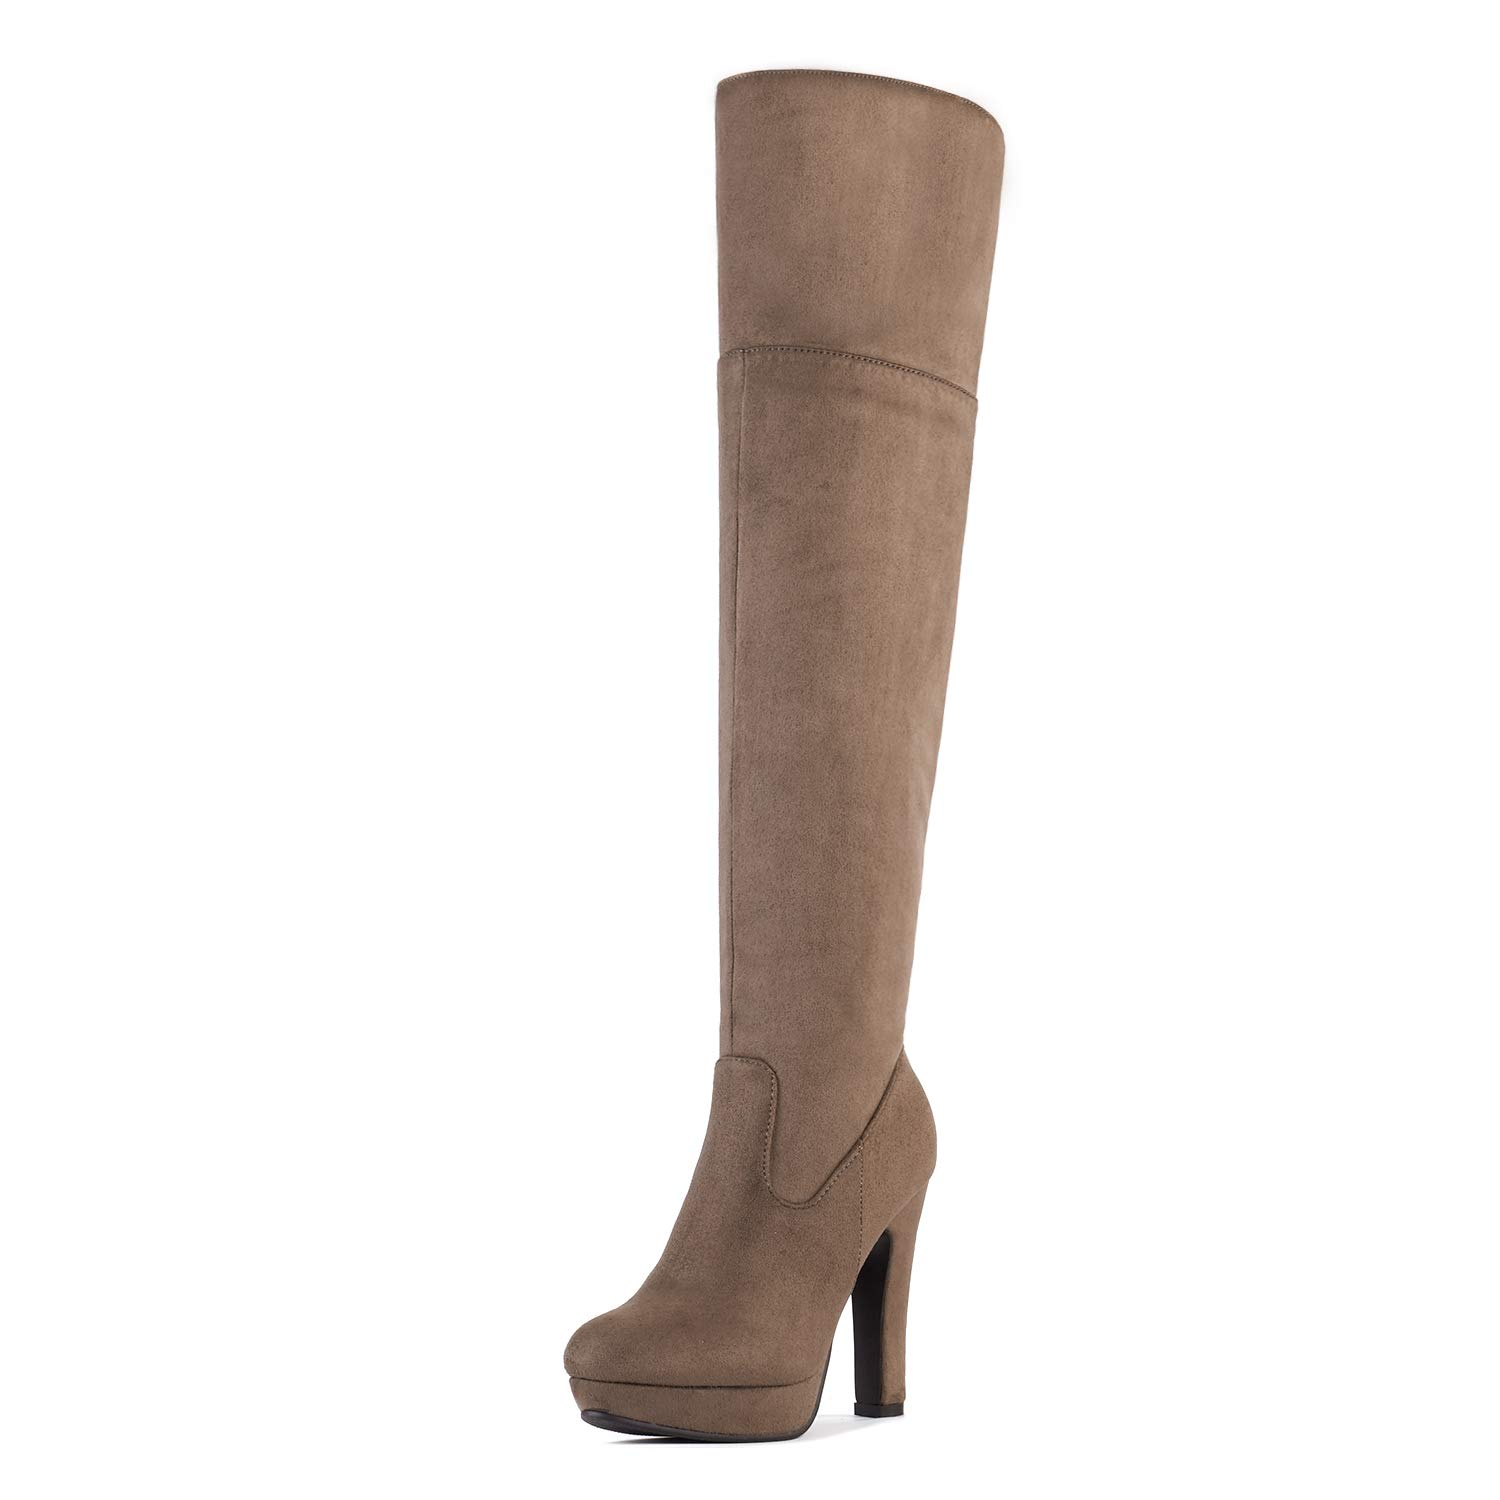 2707783aad2 DREAM PAIRS Women s Knee High High Heel Winter Fashion Boots product image